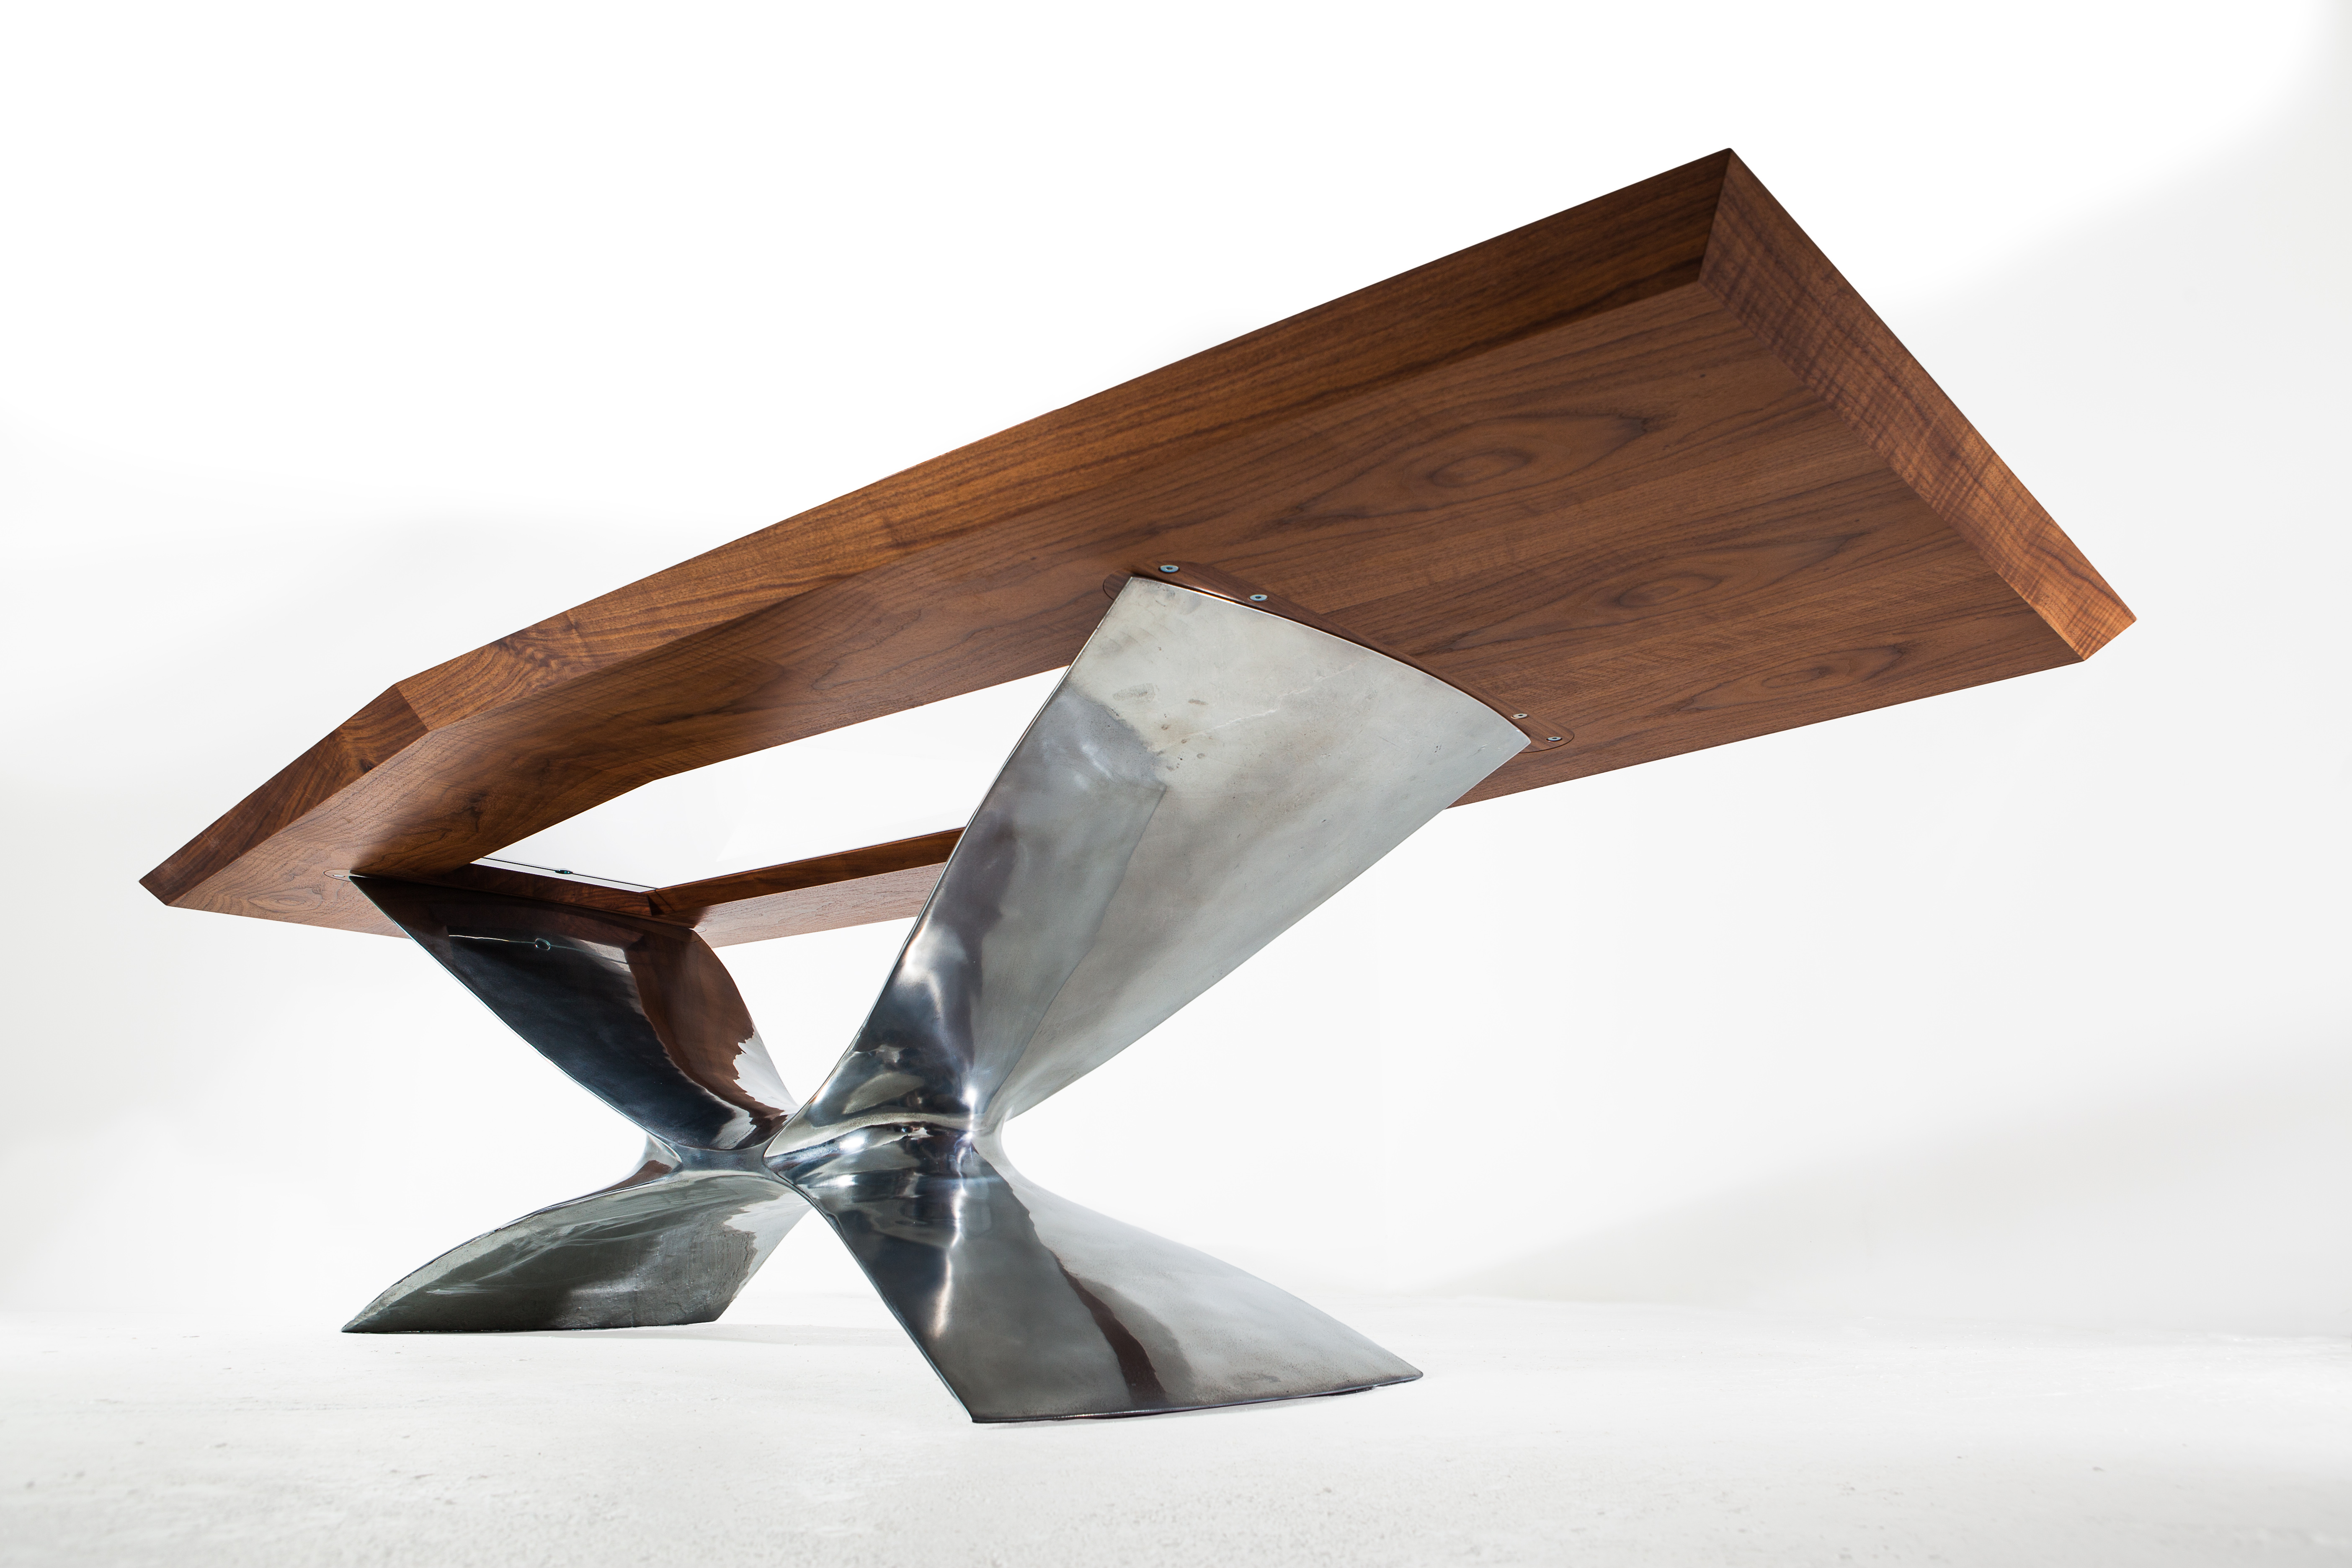 Soar desk commission hand-crafted in steel, wood and glass by Splinterworks